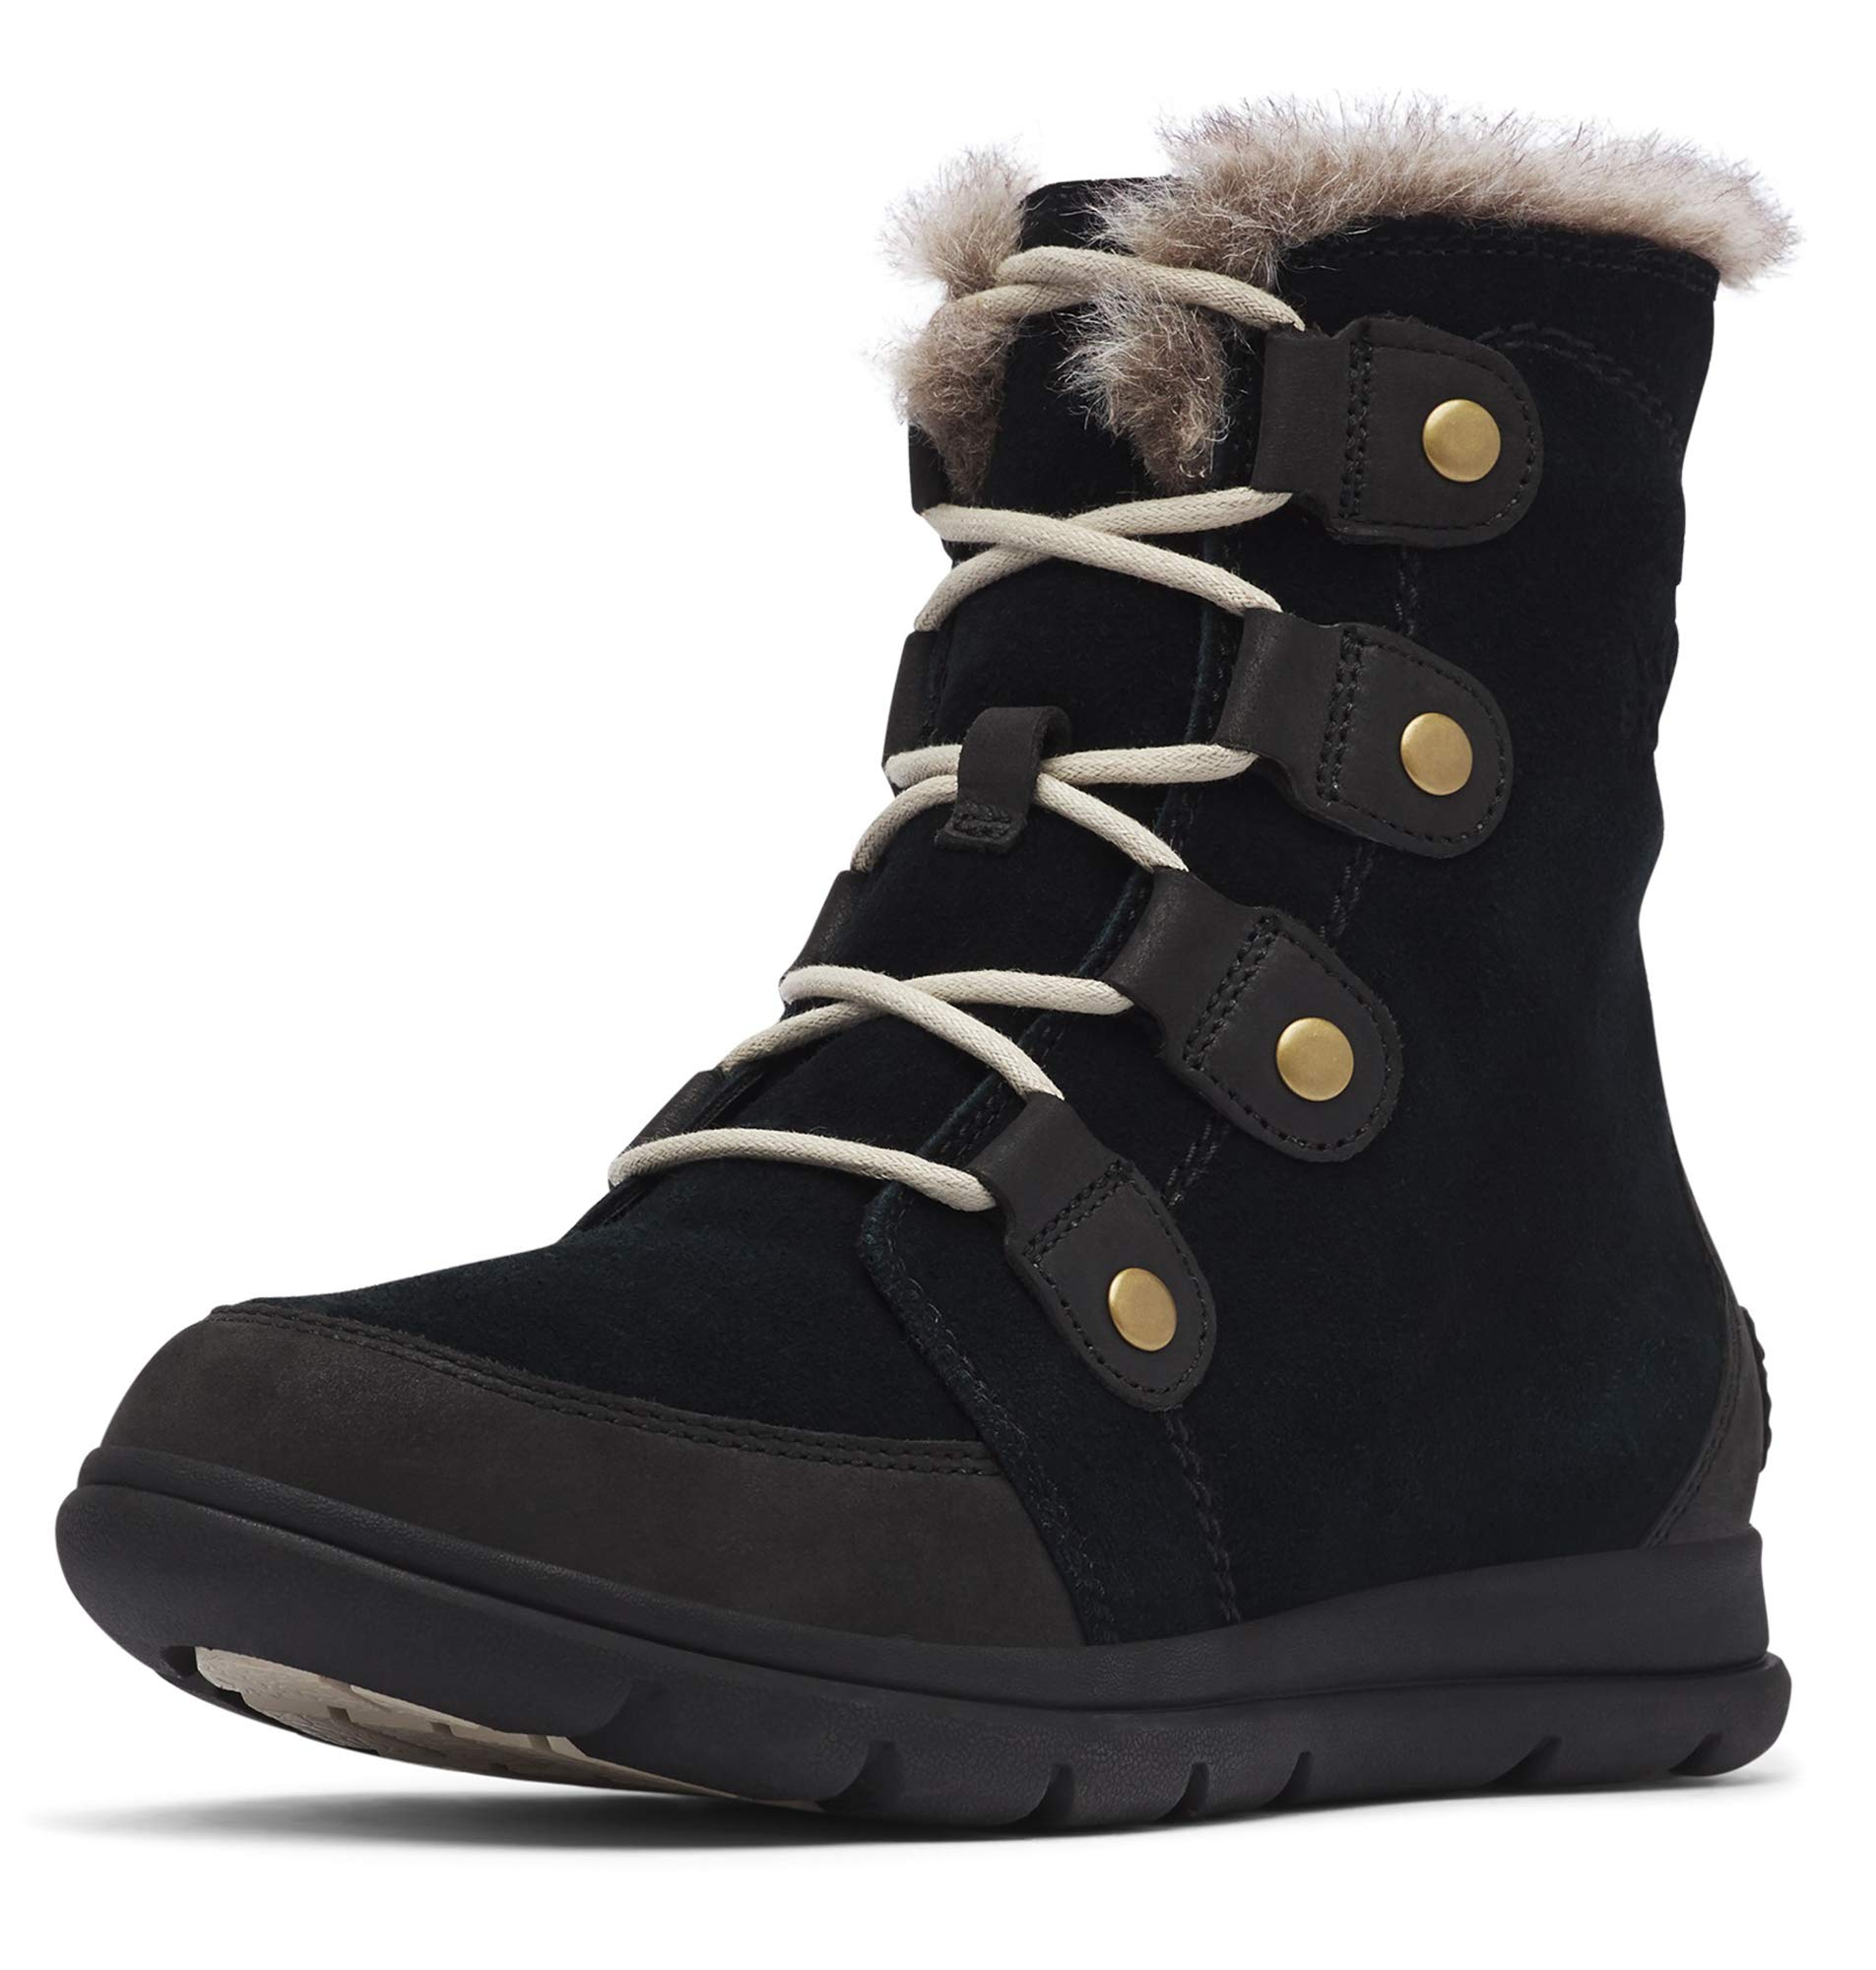 Sorel - Women's Explorer Joan Waterproof Insulated Winter Boot, Black/Dark Stone, 9 M US by Sorel